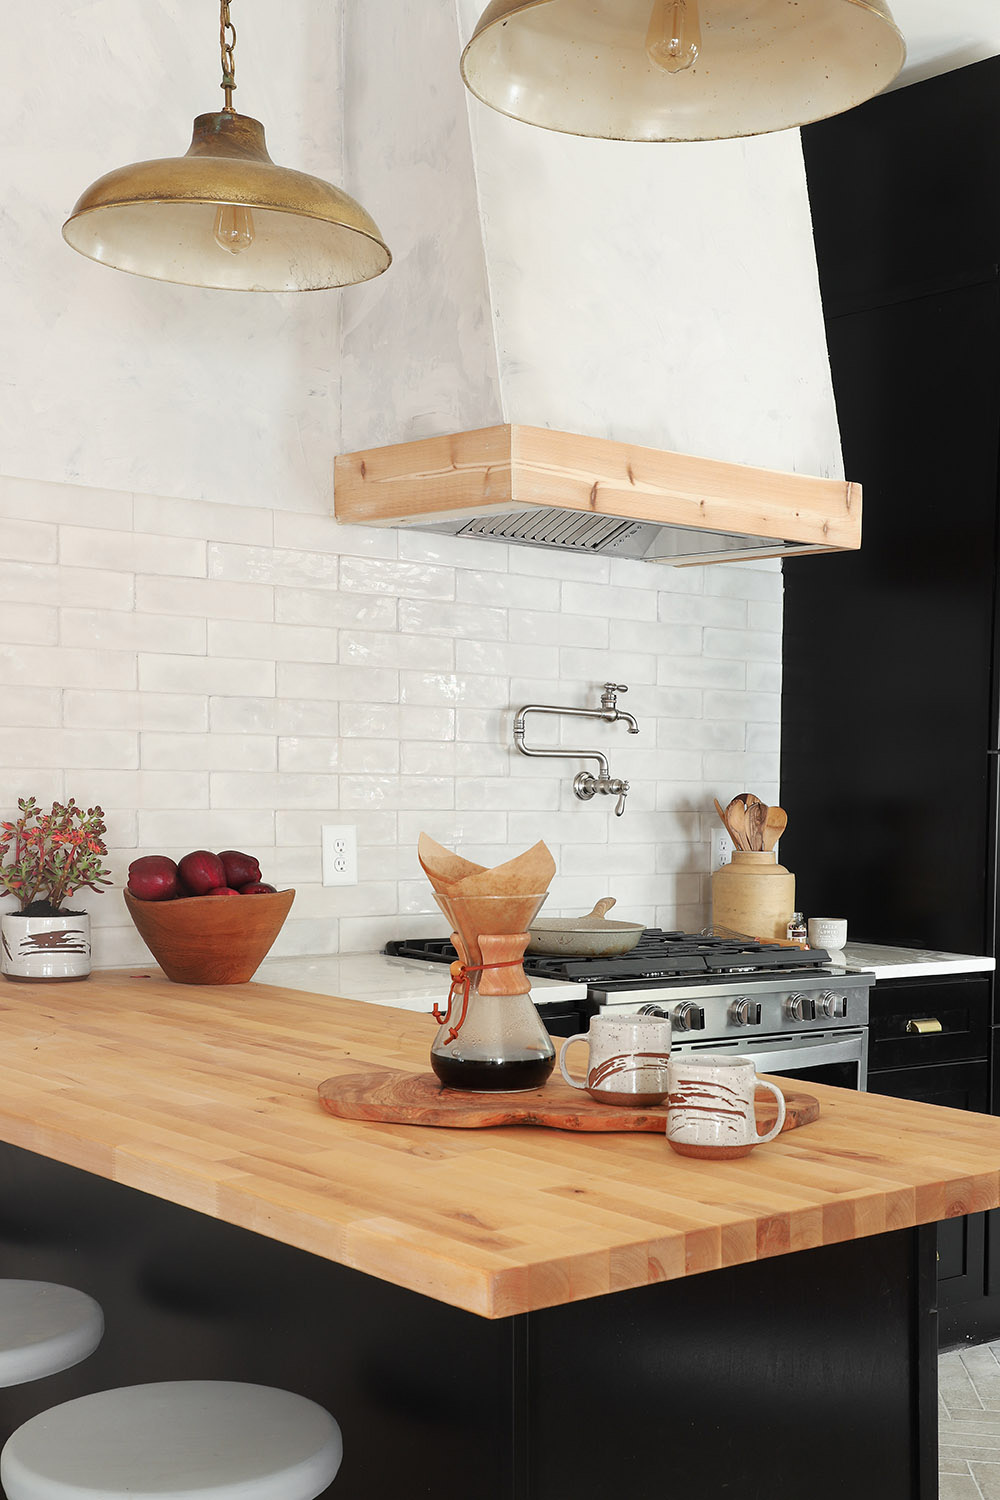 A wall mount range hood with wood accent cover around it.